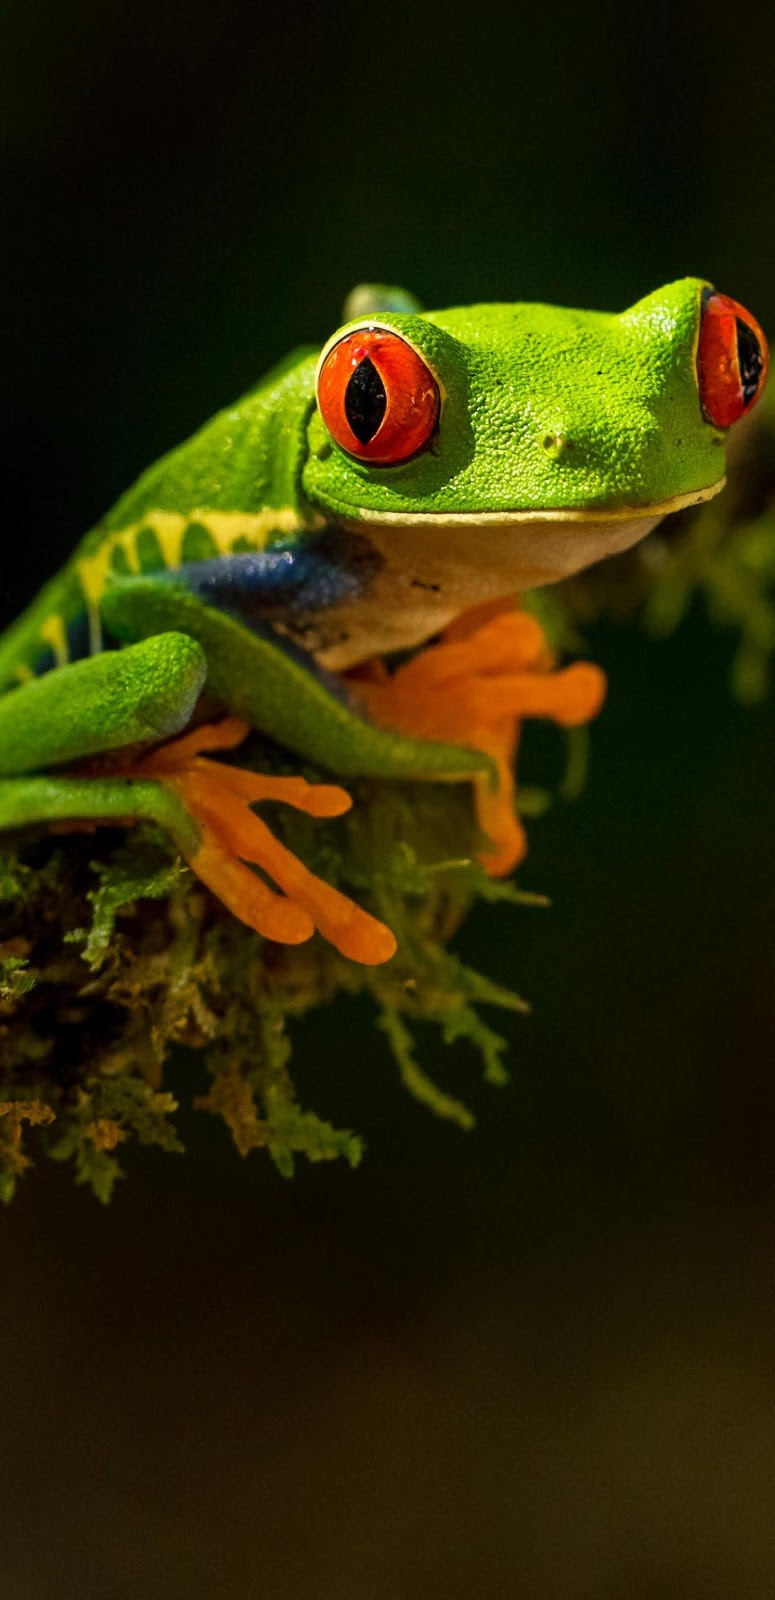 A tree frog's amazing red eyes.